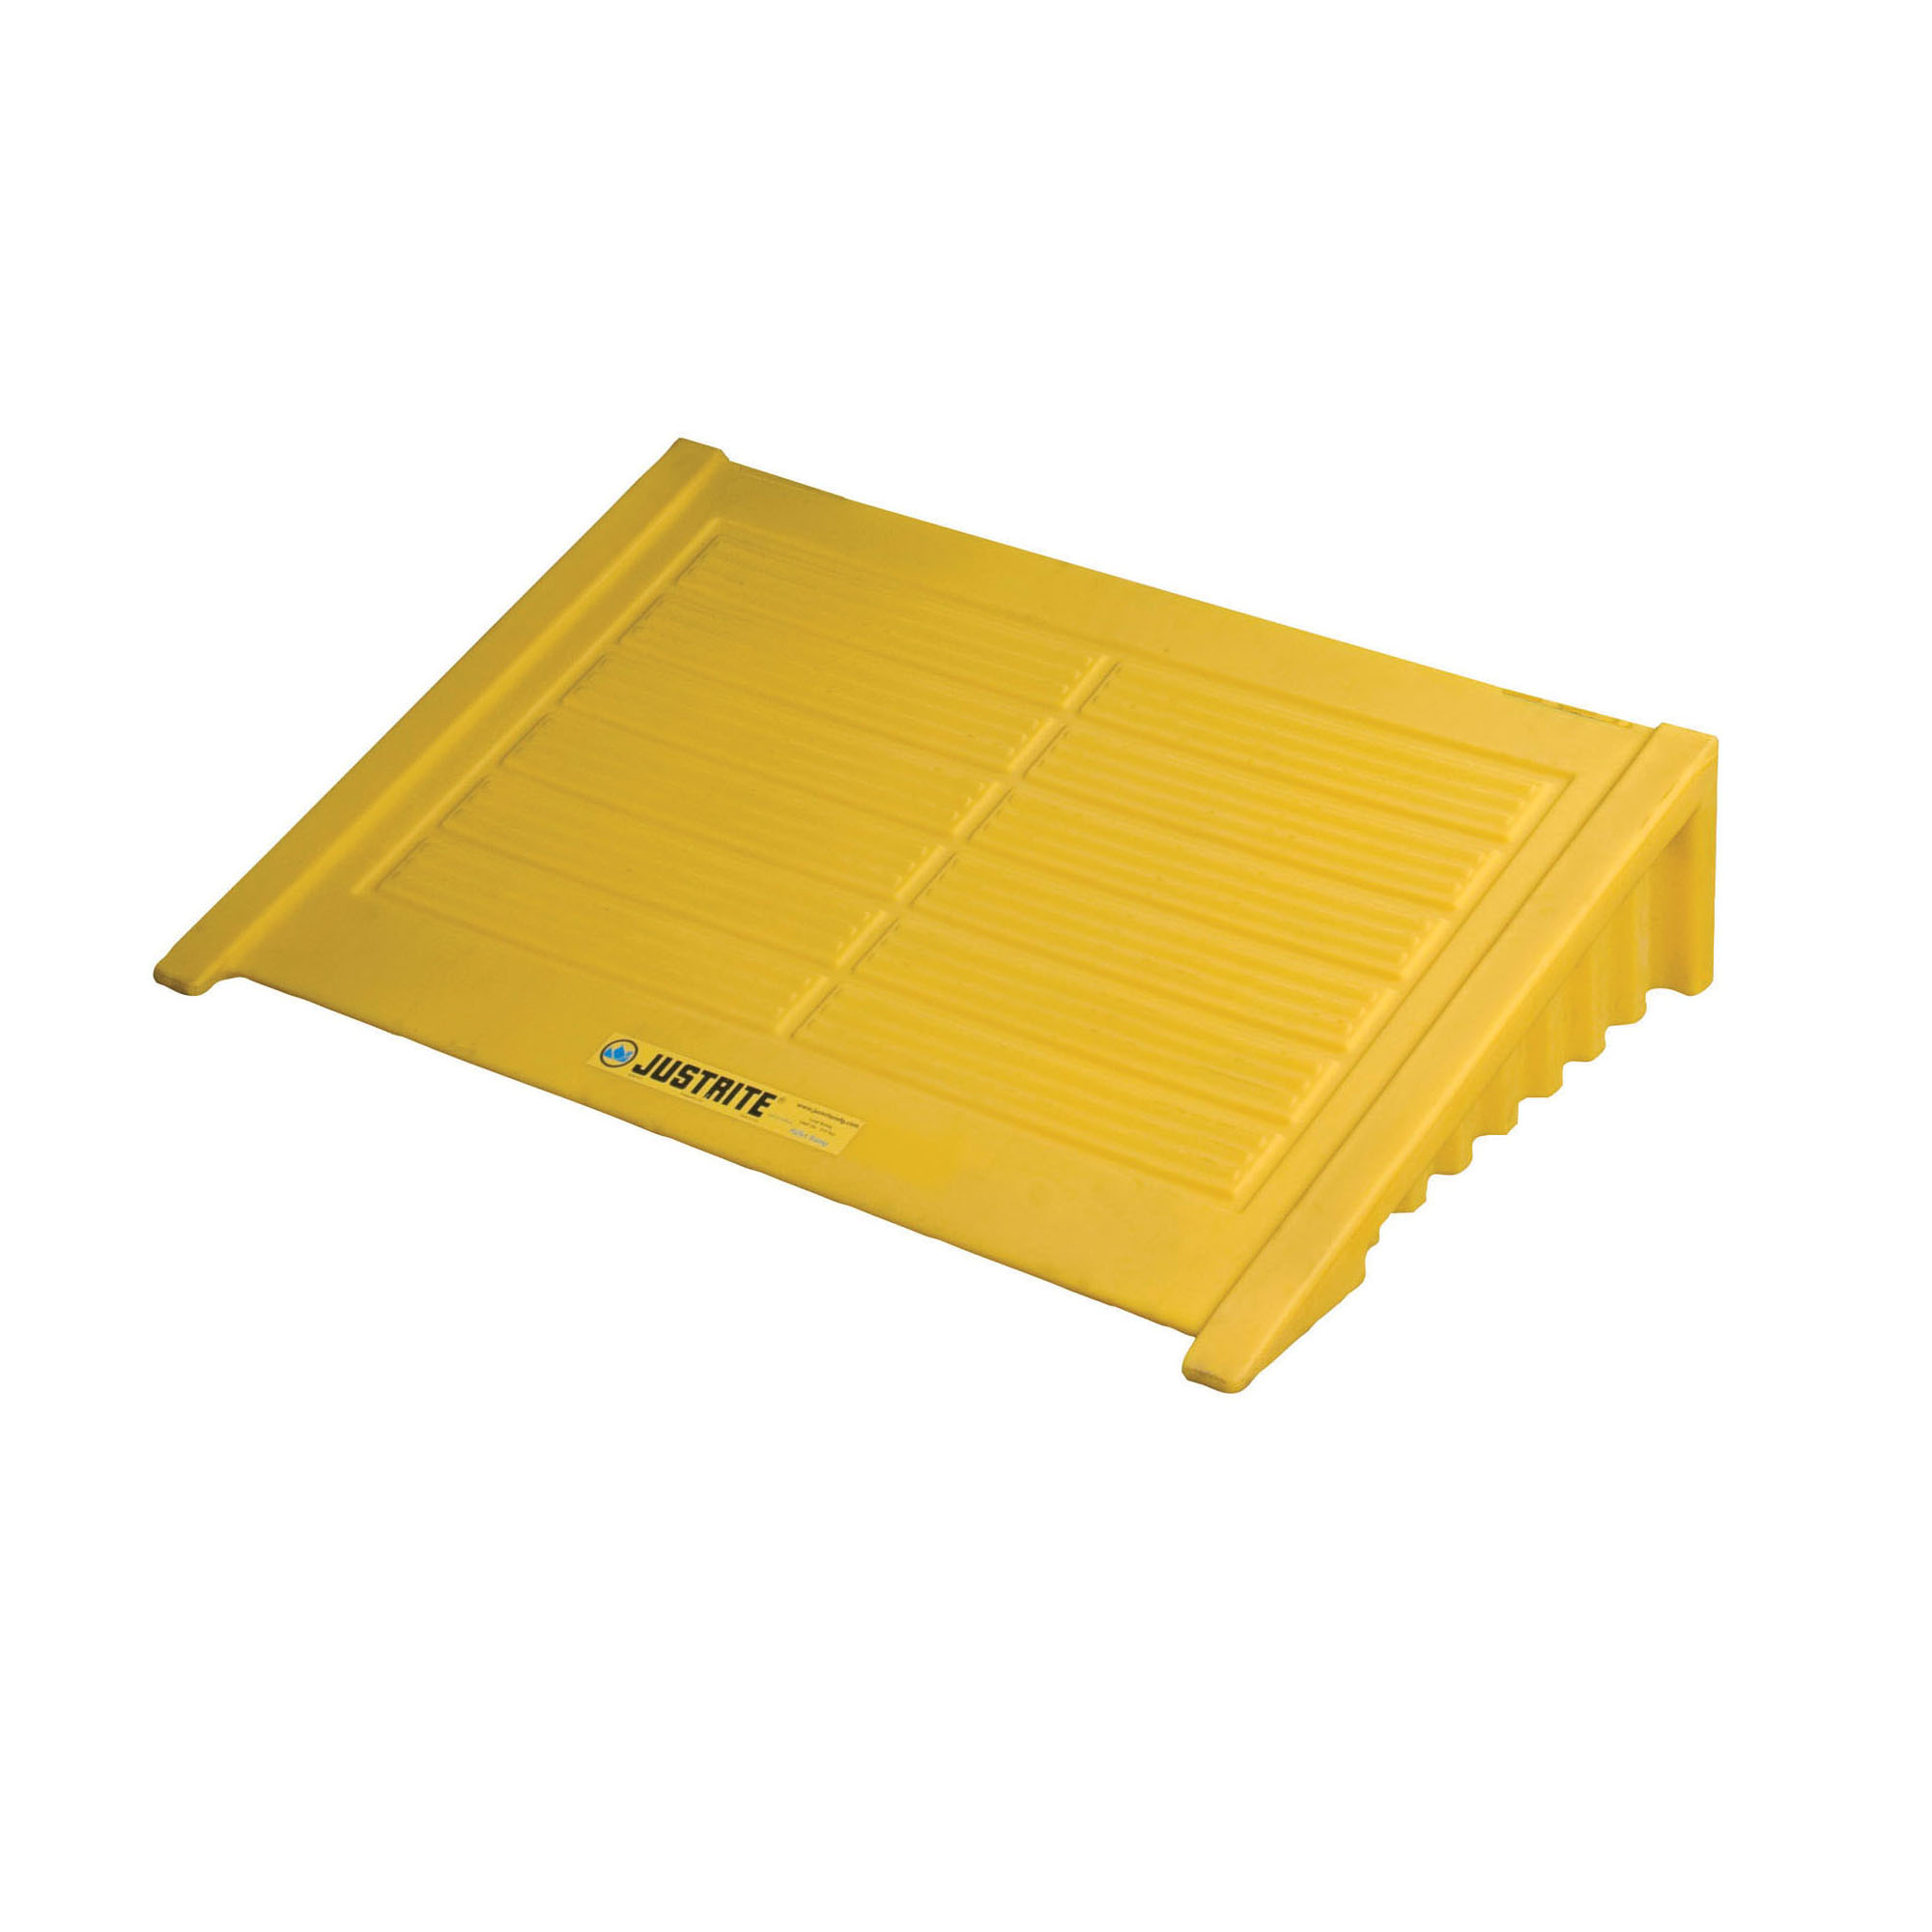 Justrite® 28620 Spill Pallet Ramp, 33 in L x 49 in W x 10-1/2 in H, 1000 lb Load, 35% Recycled Polyethylene